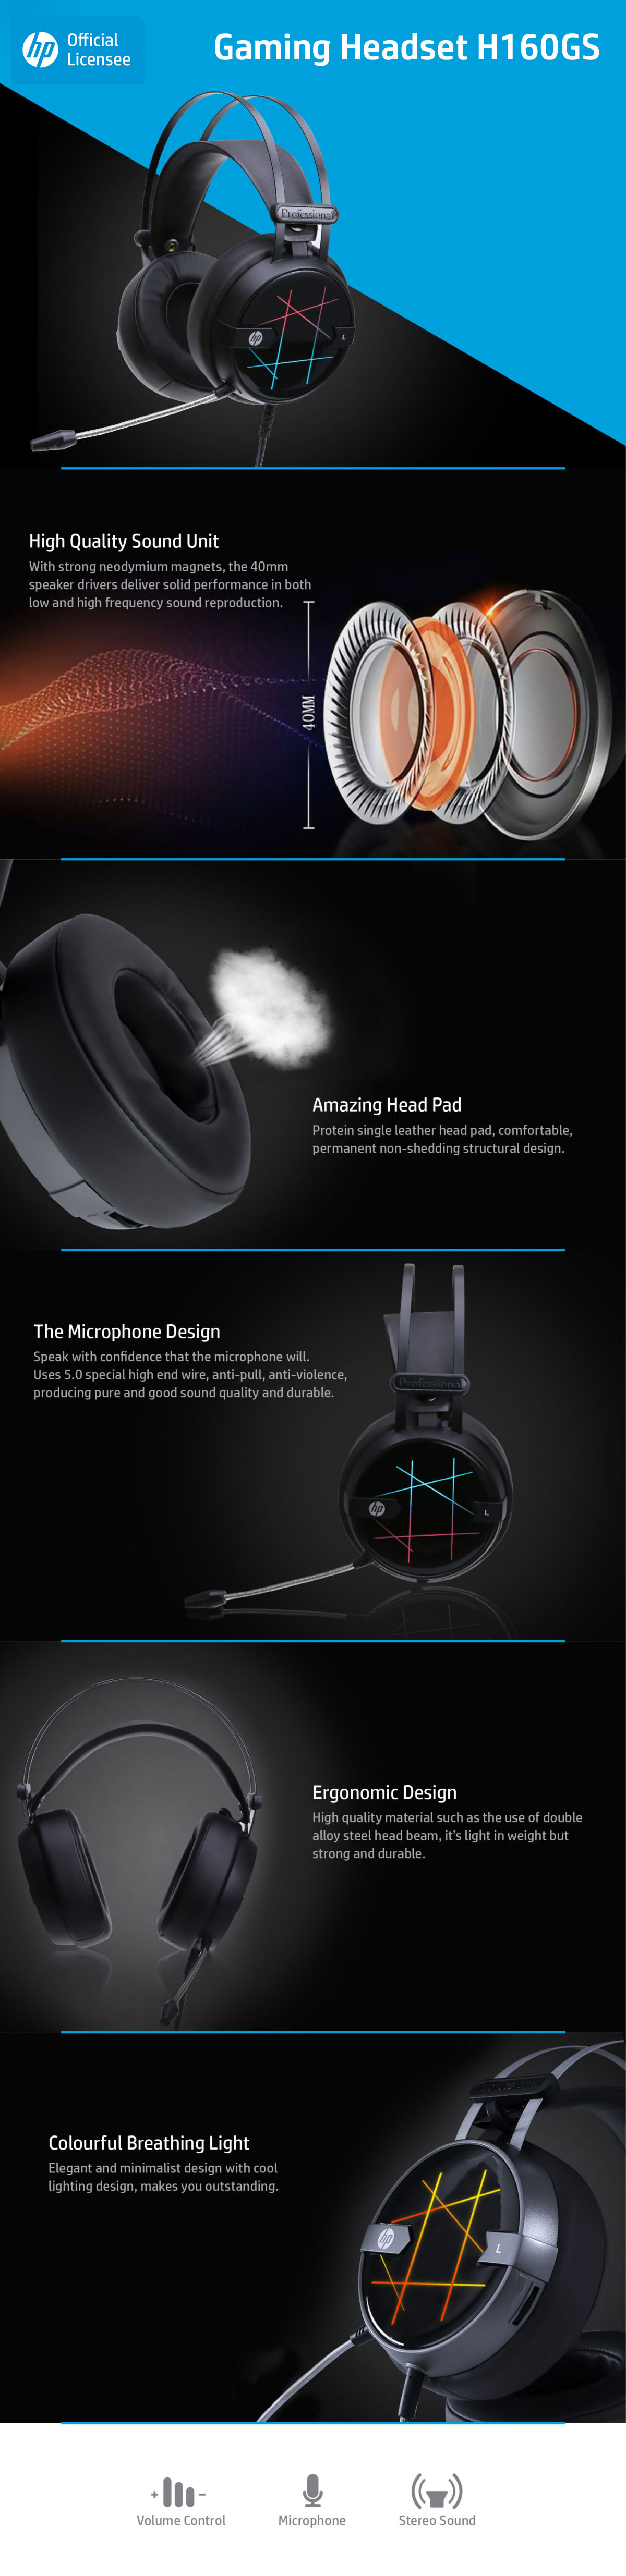 HP H160GS Gaming Headphone